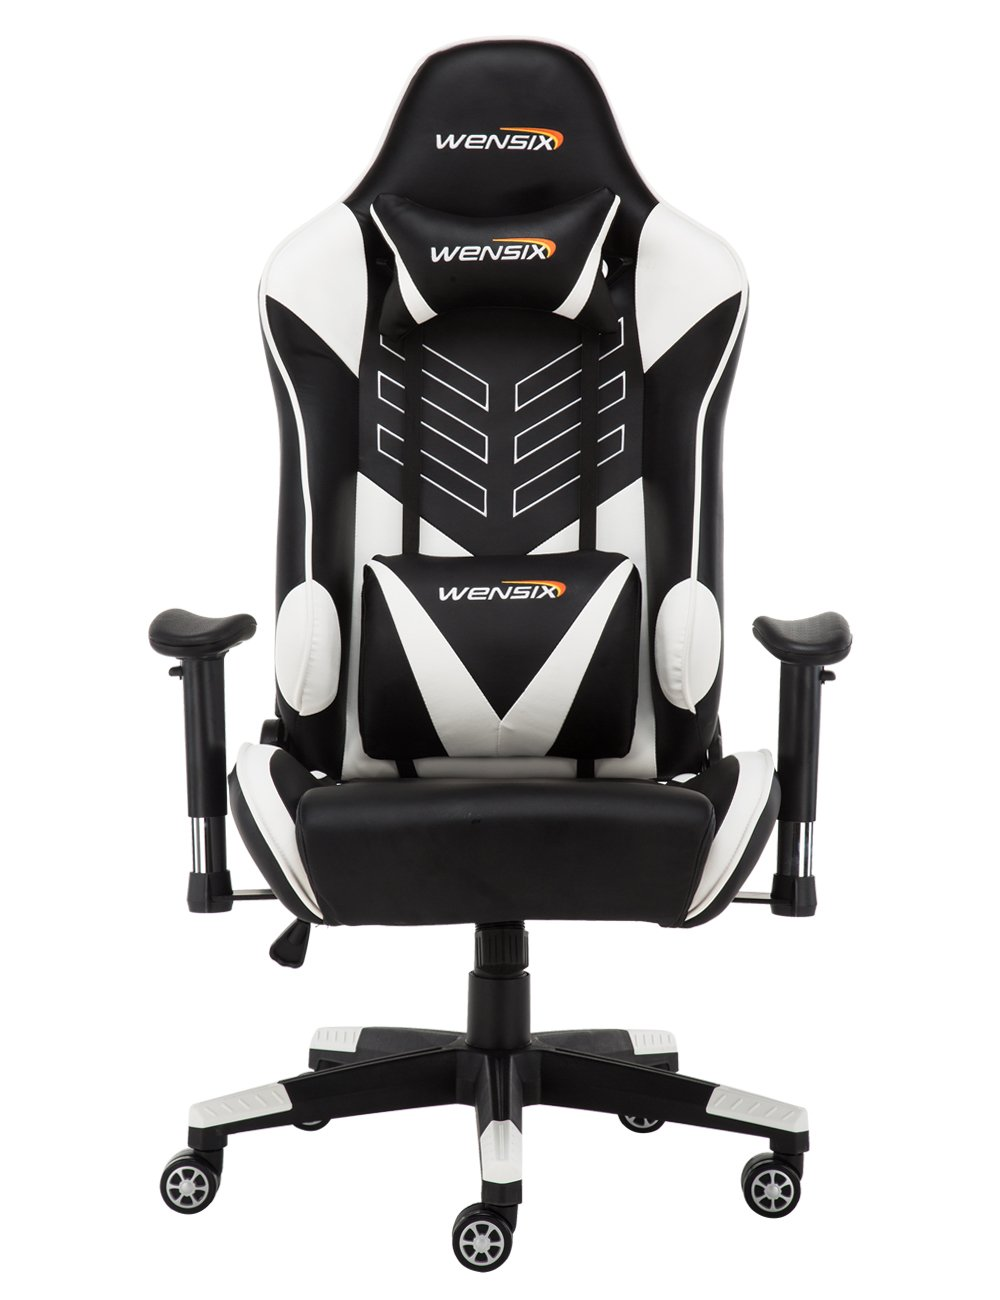 WENSIX Gaming Chair High Back Computer Chair With Adjusting Headrest And  Lumbar Support, Ergonomic Designs Extremely Durable PU Leather Steel Frame  Racing ...